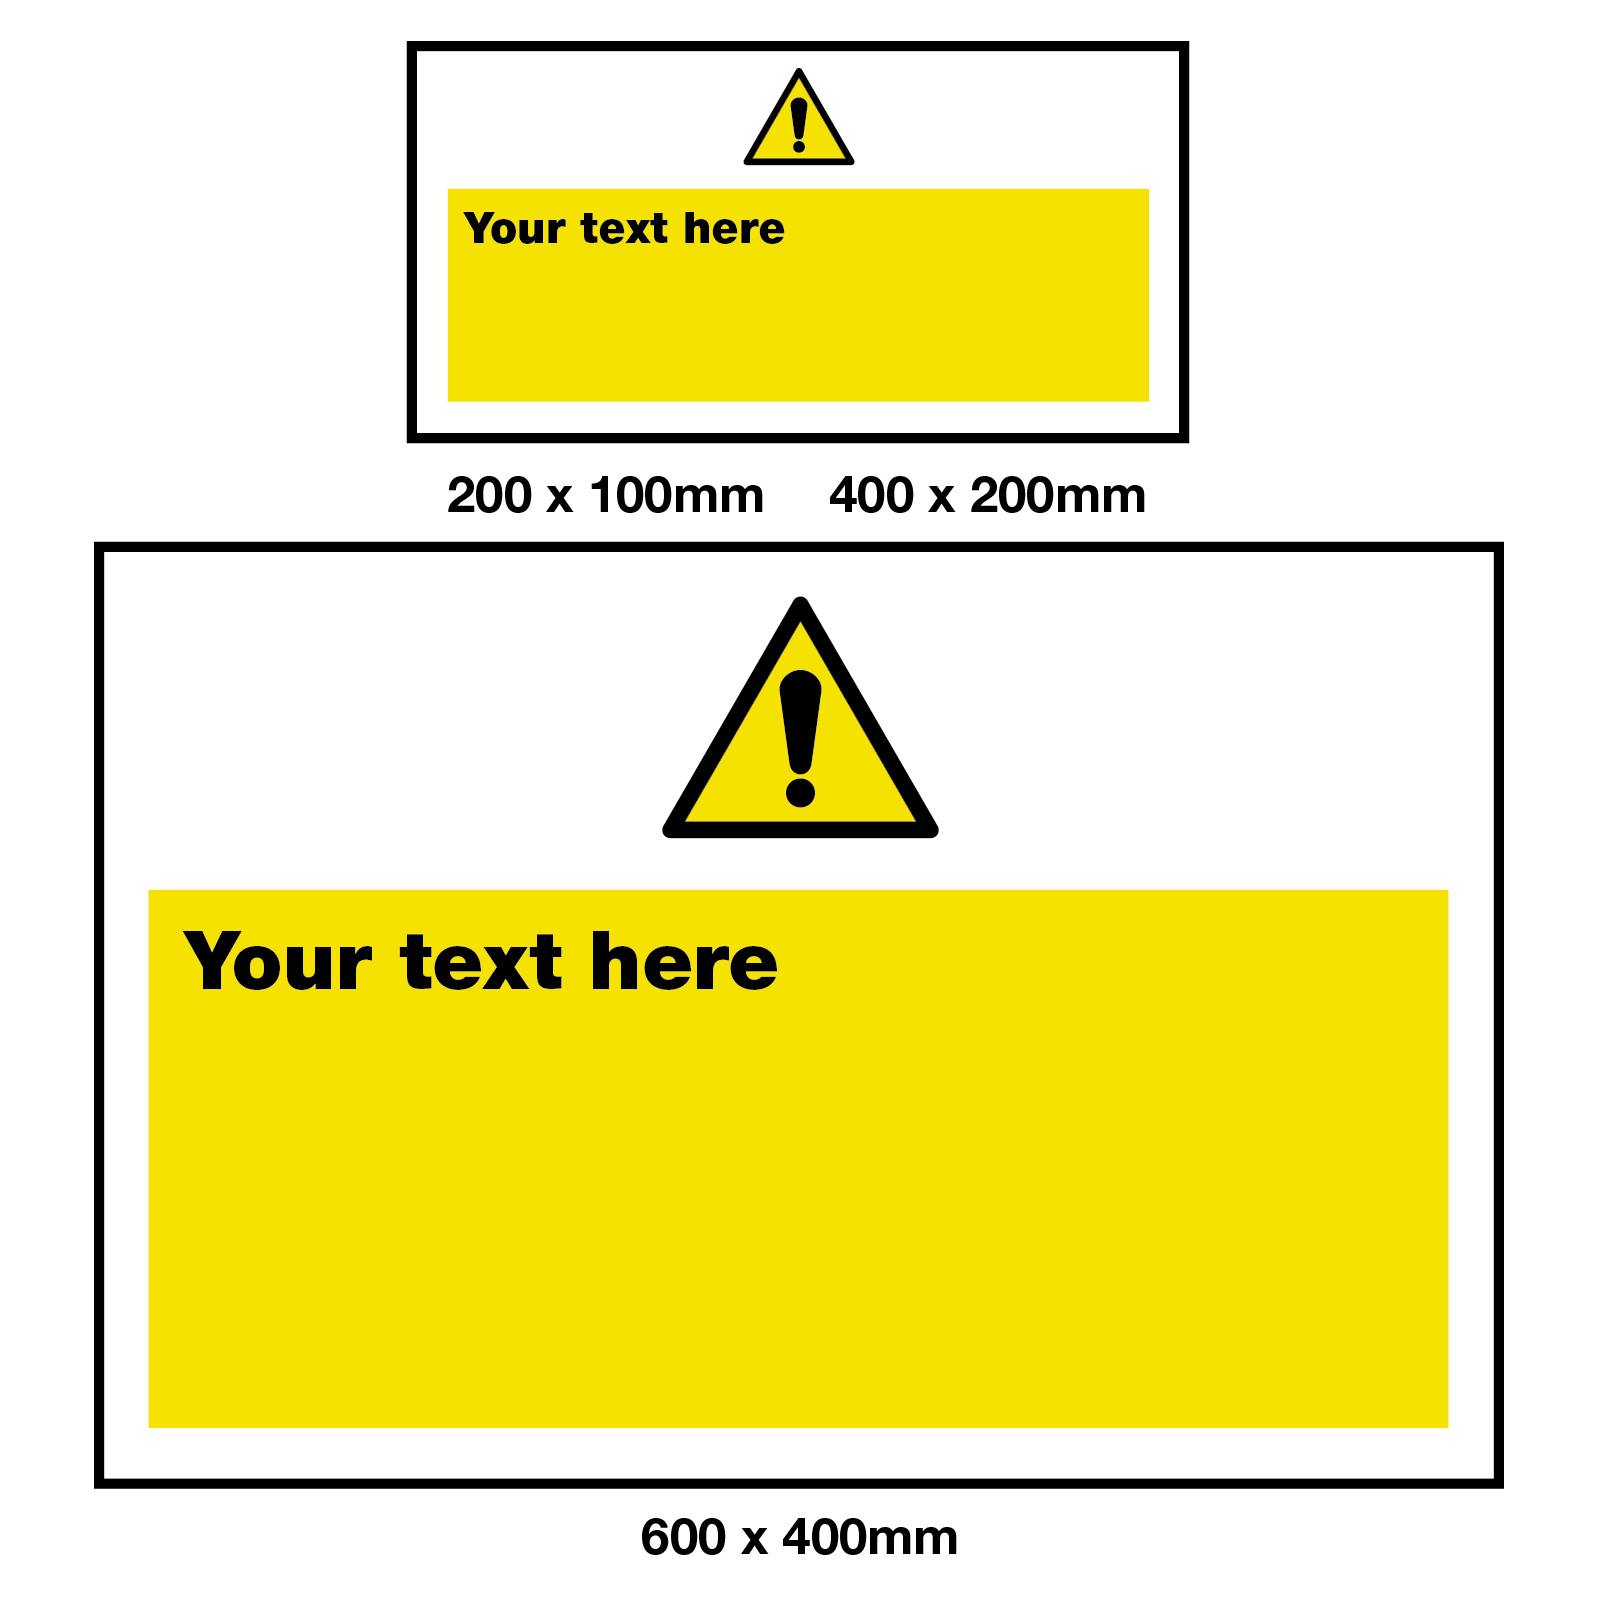 Create Your Own Warning Safety Sign